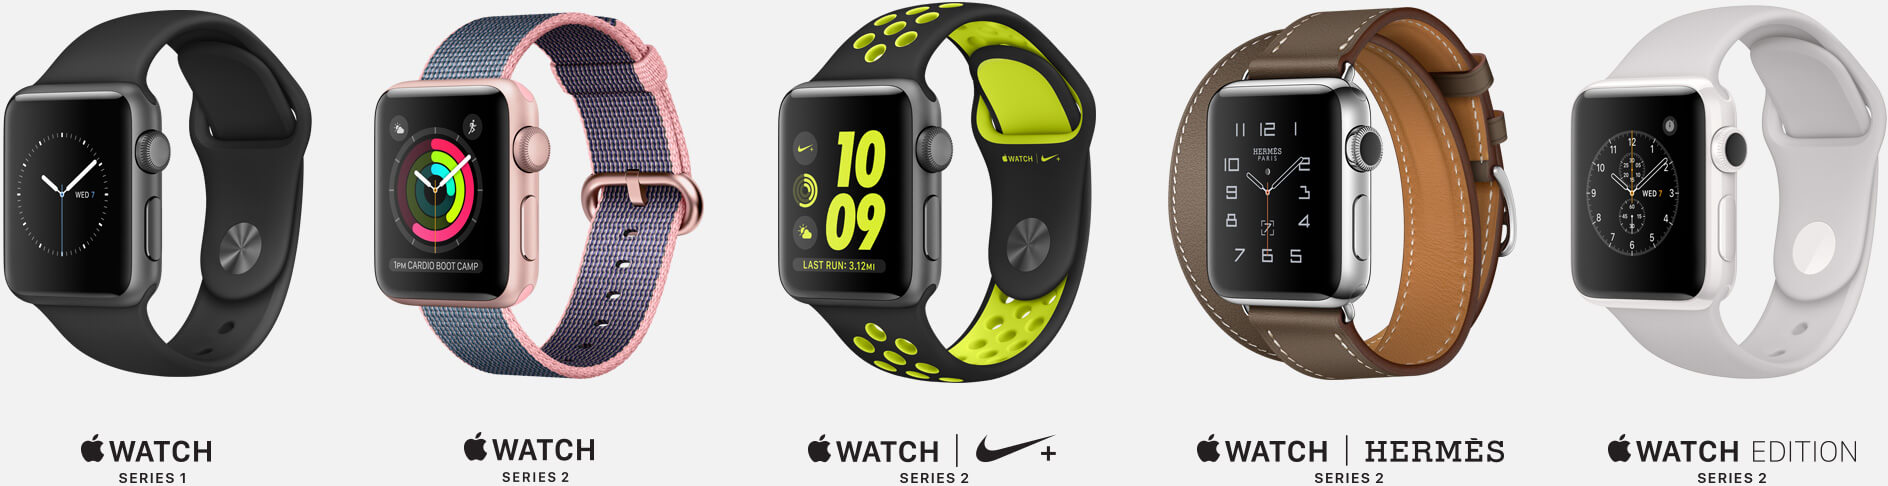 All Apple Watch series 2